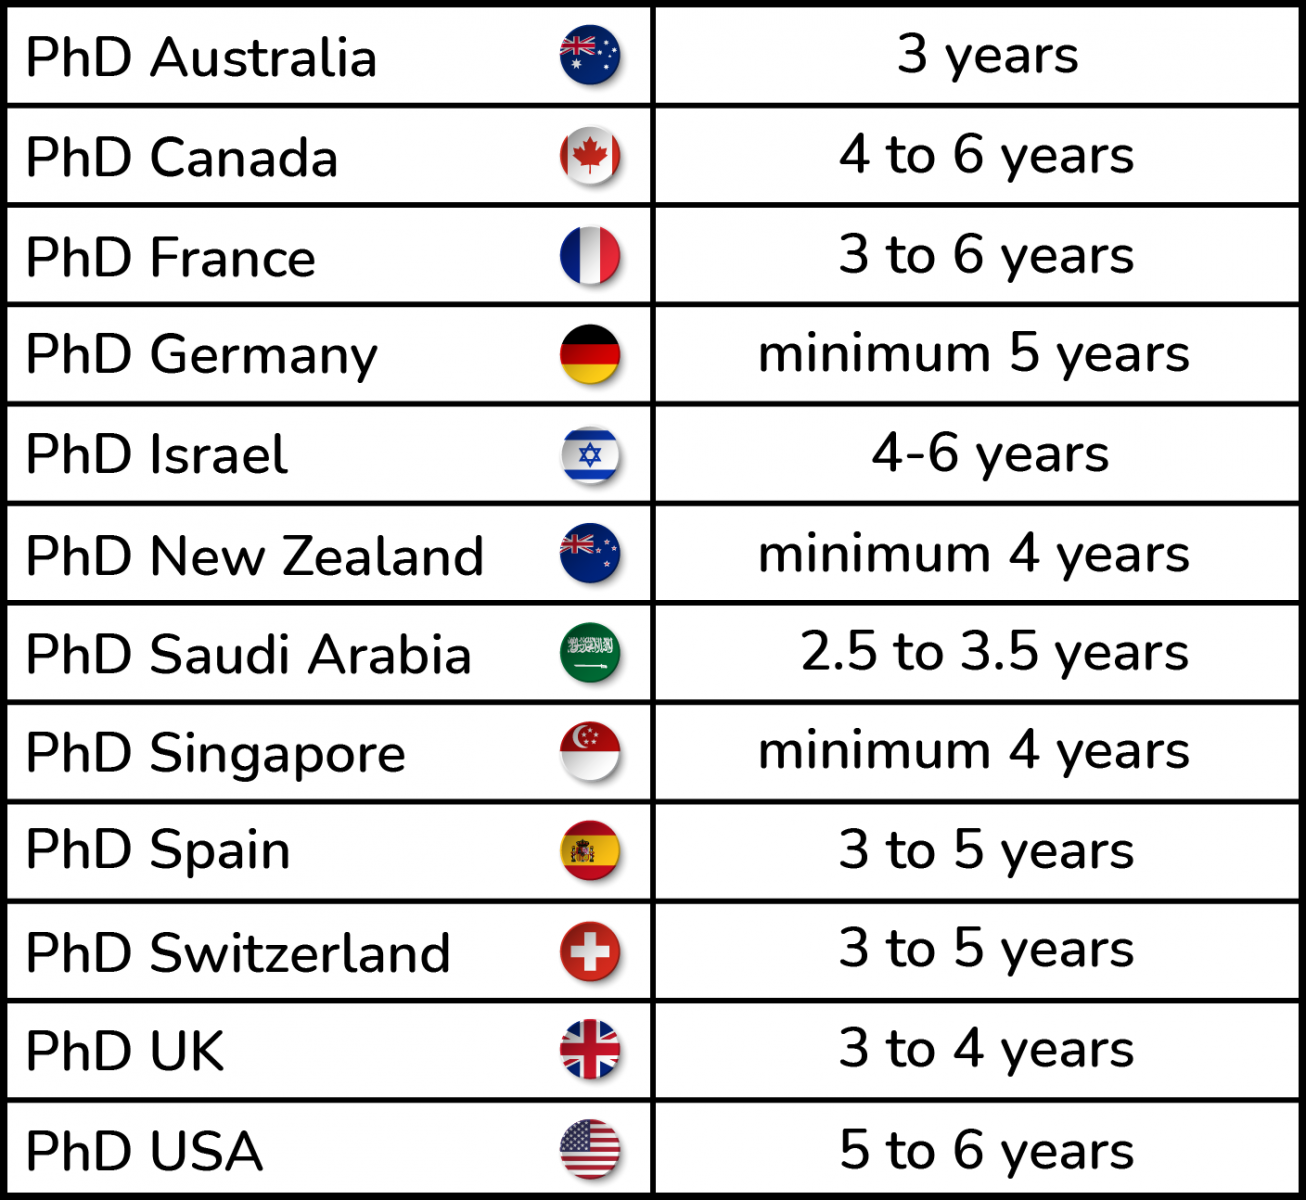 Different countries offer different time duration for the accomplishment of a PhD